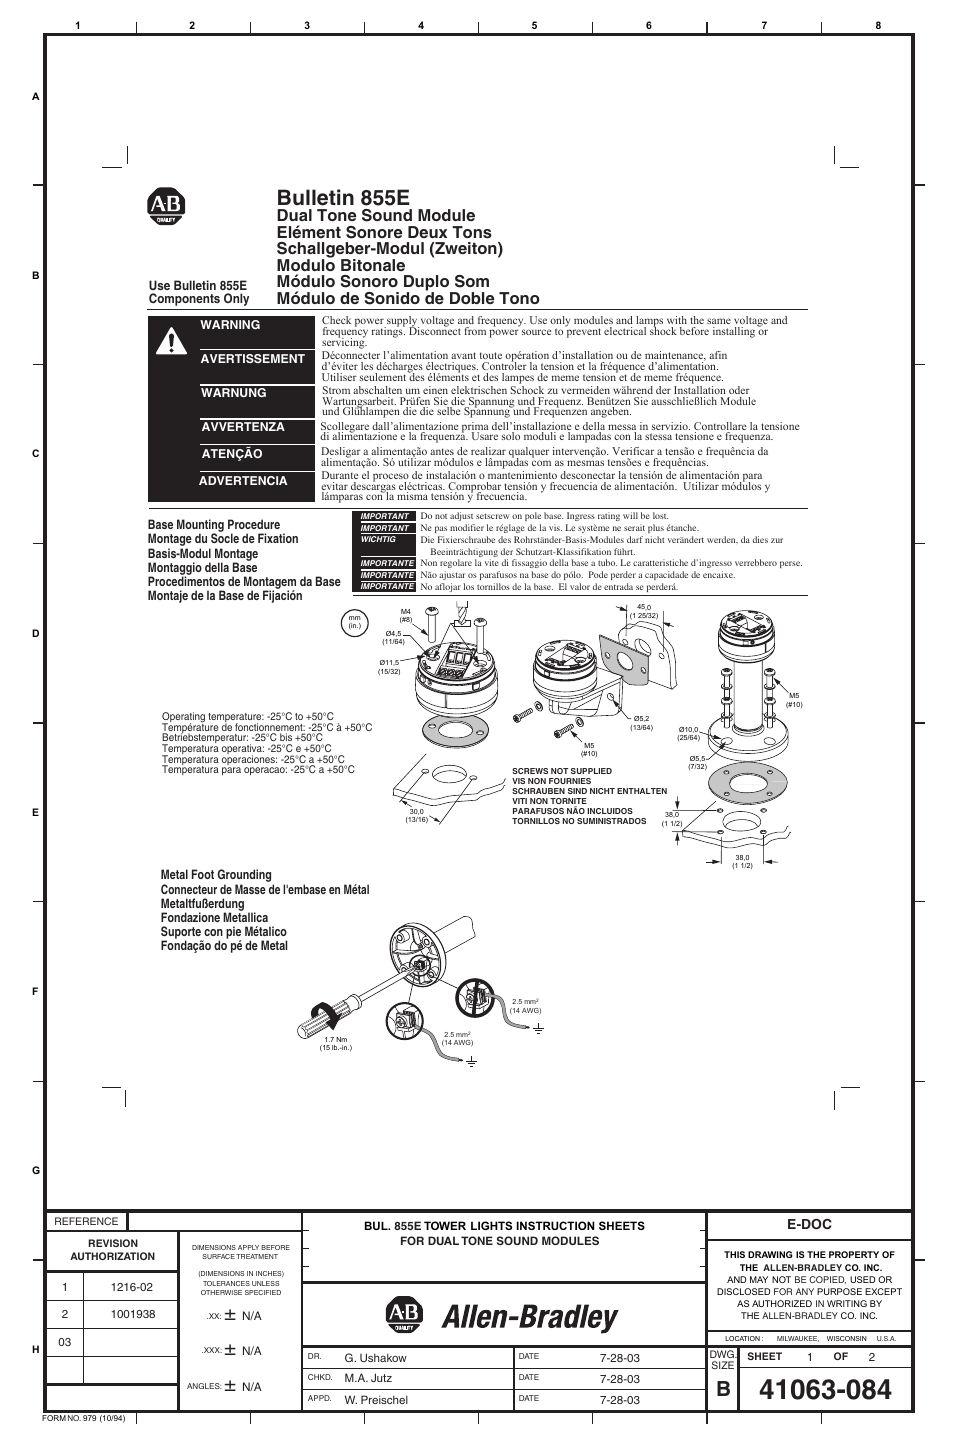 rockwell automation 855e _ dual tone sound module page1 rockwell automation 855e _ dual tone sound module user manual 2 855e bcb wiring diagram at cos-gaming.co